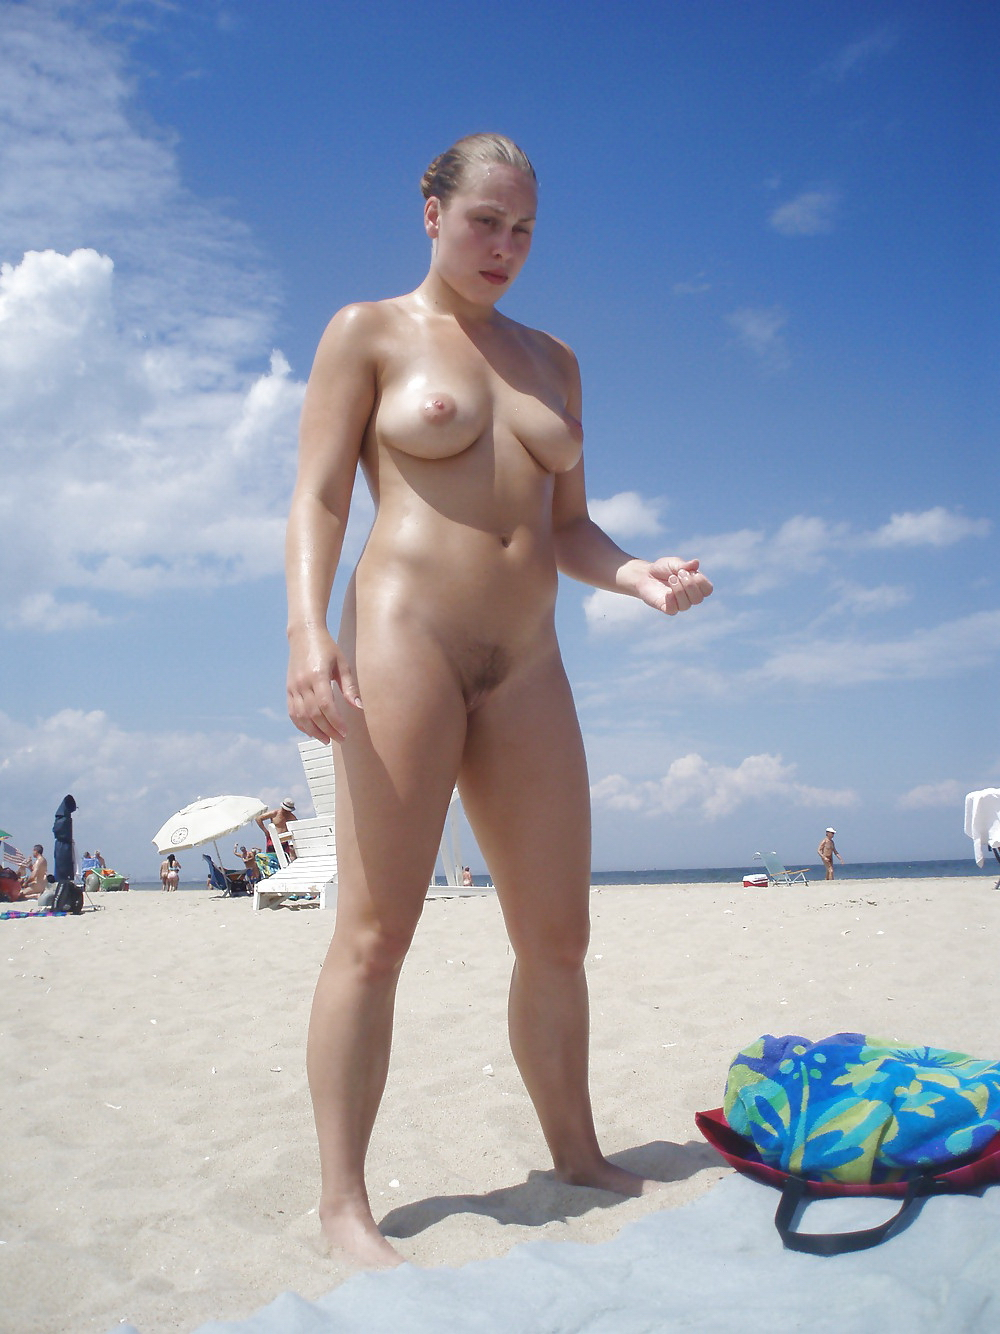 Chubby nude fat ugly women